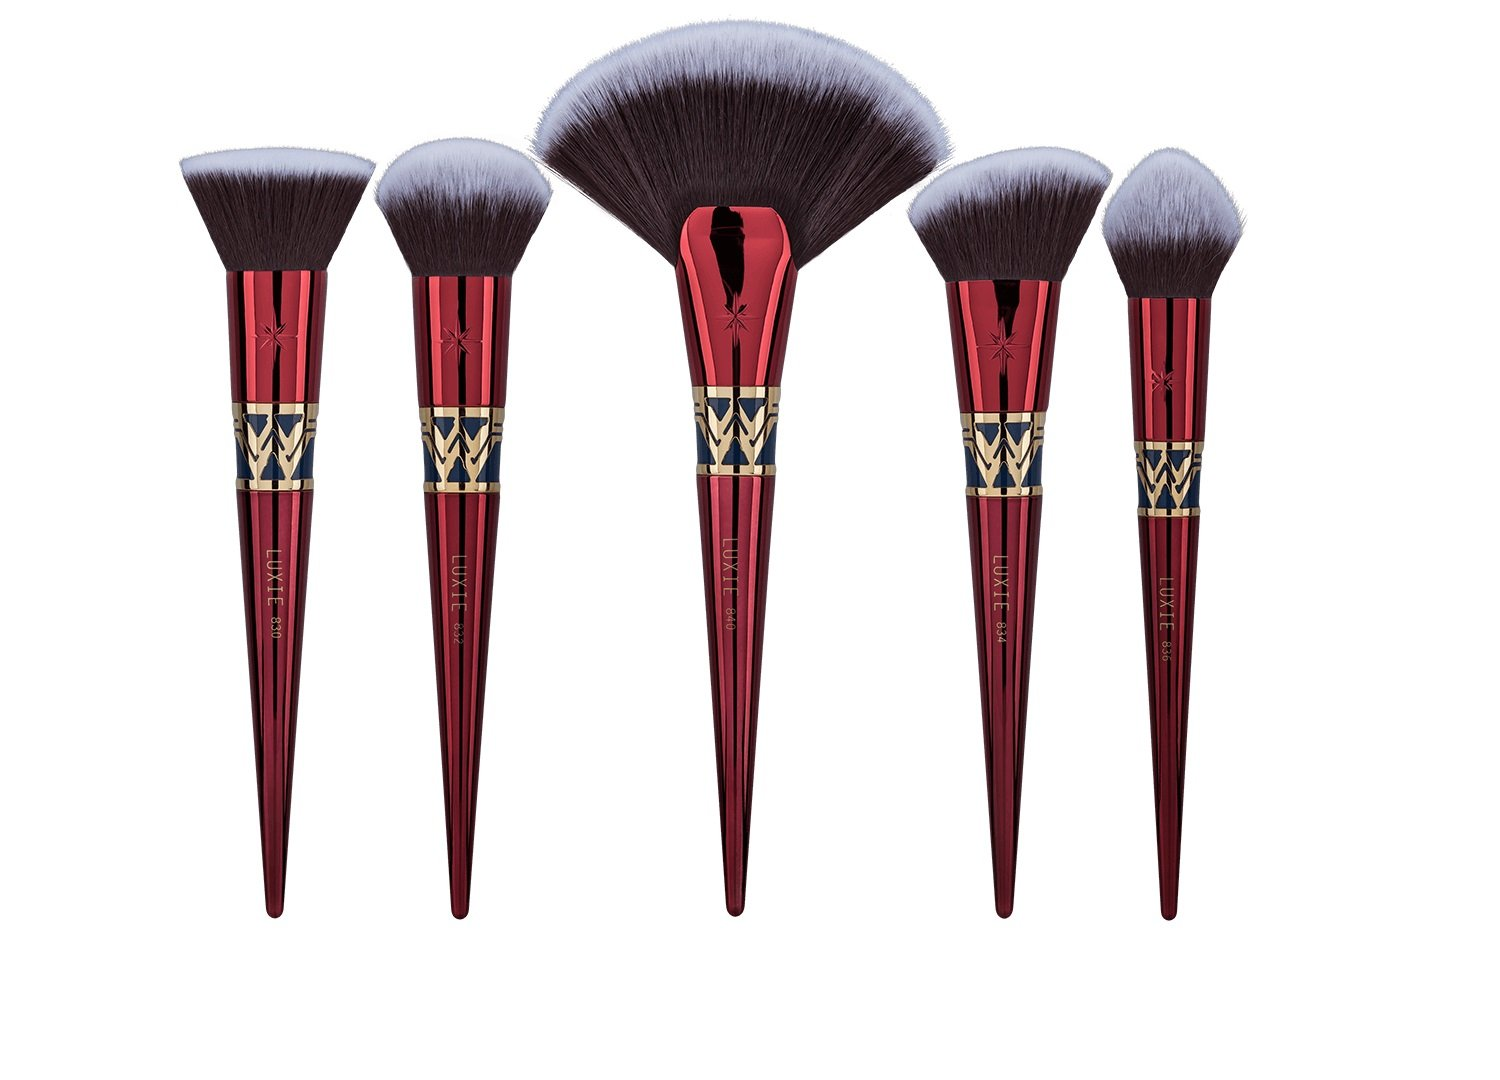 Luxie Beauty - Officially Licensed Wonder Woman 5 Piece Brush Set & Mirror Compact by LUXIE (Image #2)